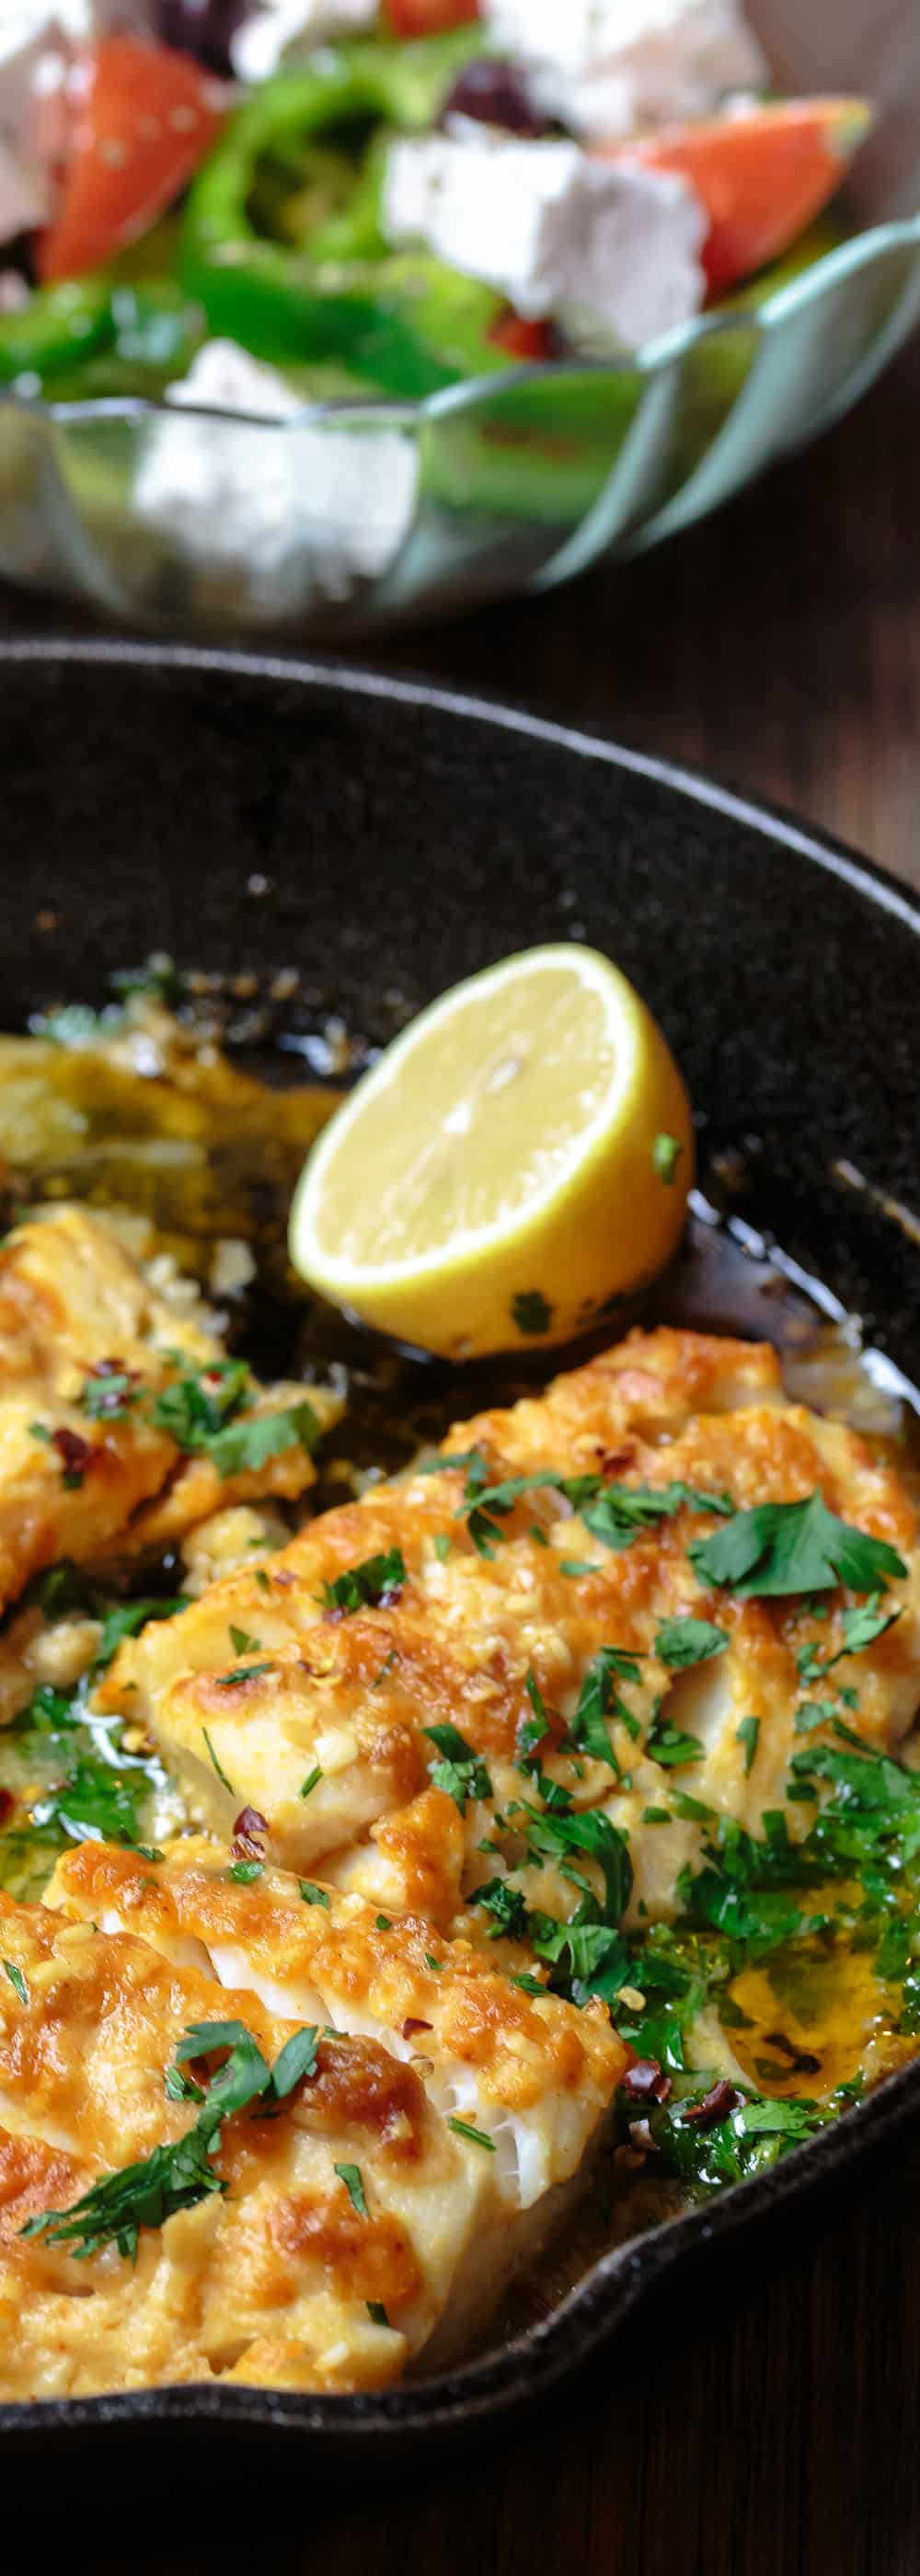 Greek style baked cod recipe the mediterranean dish greek style baked cod recipe with lemon and garlic the mediterranean dish easy forumfinder Image collections